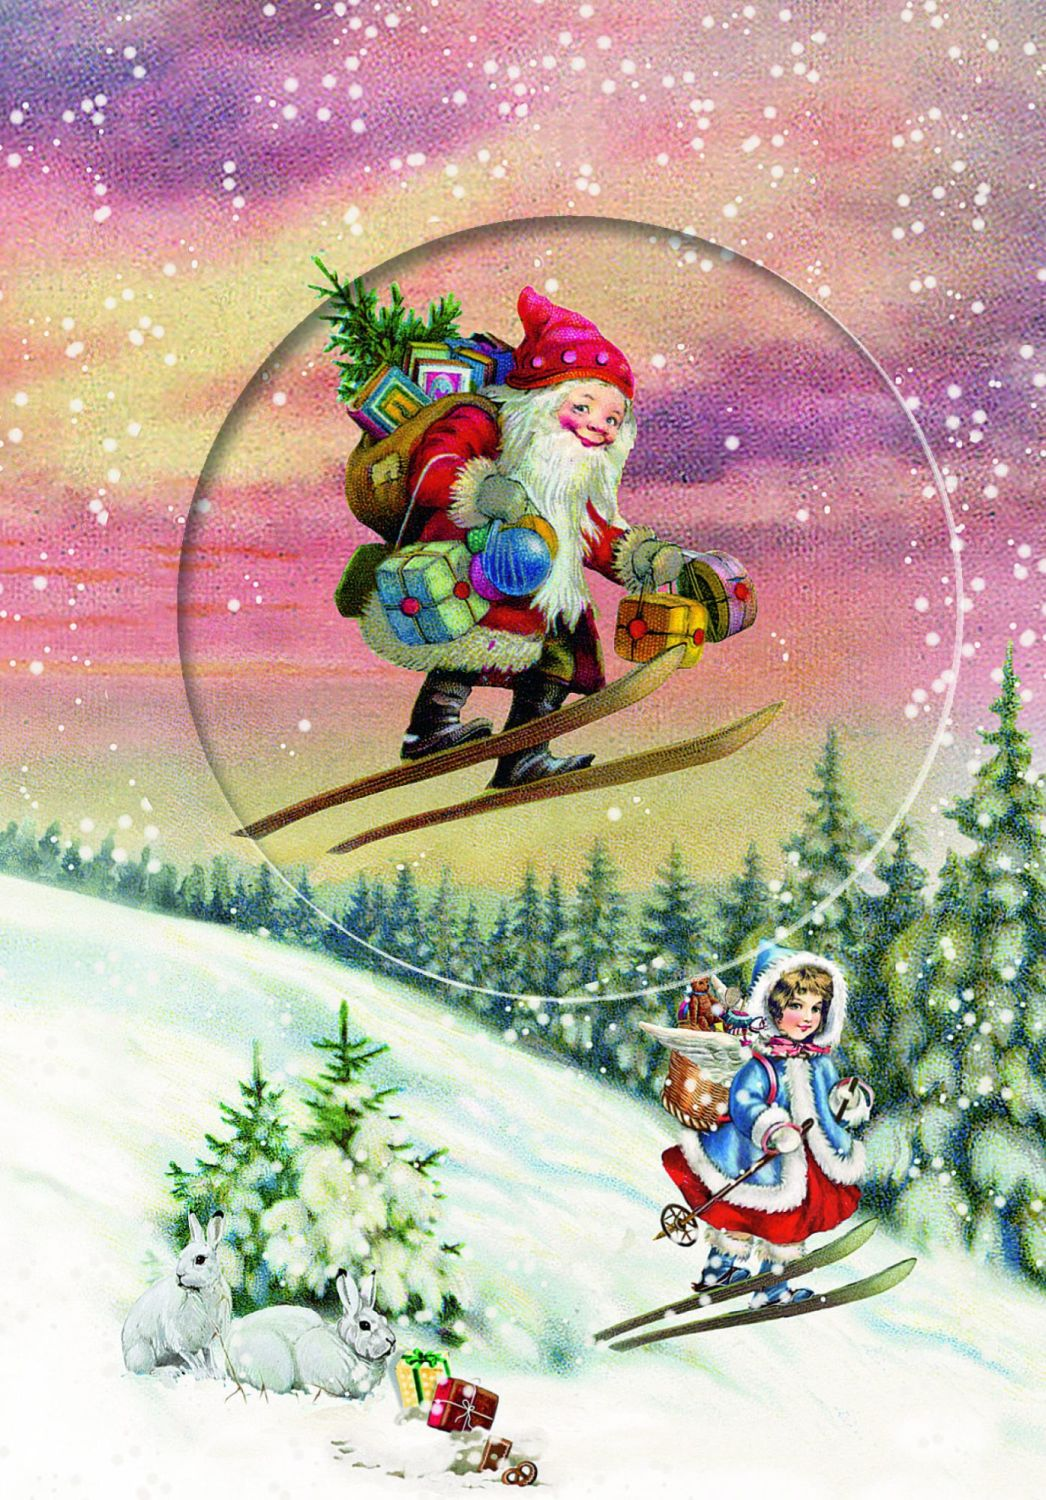 Skiing Santa Snow Scene Advent Calendar Card  with Glitter Window - 16.5cm